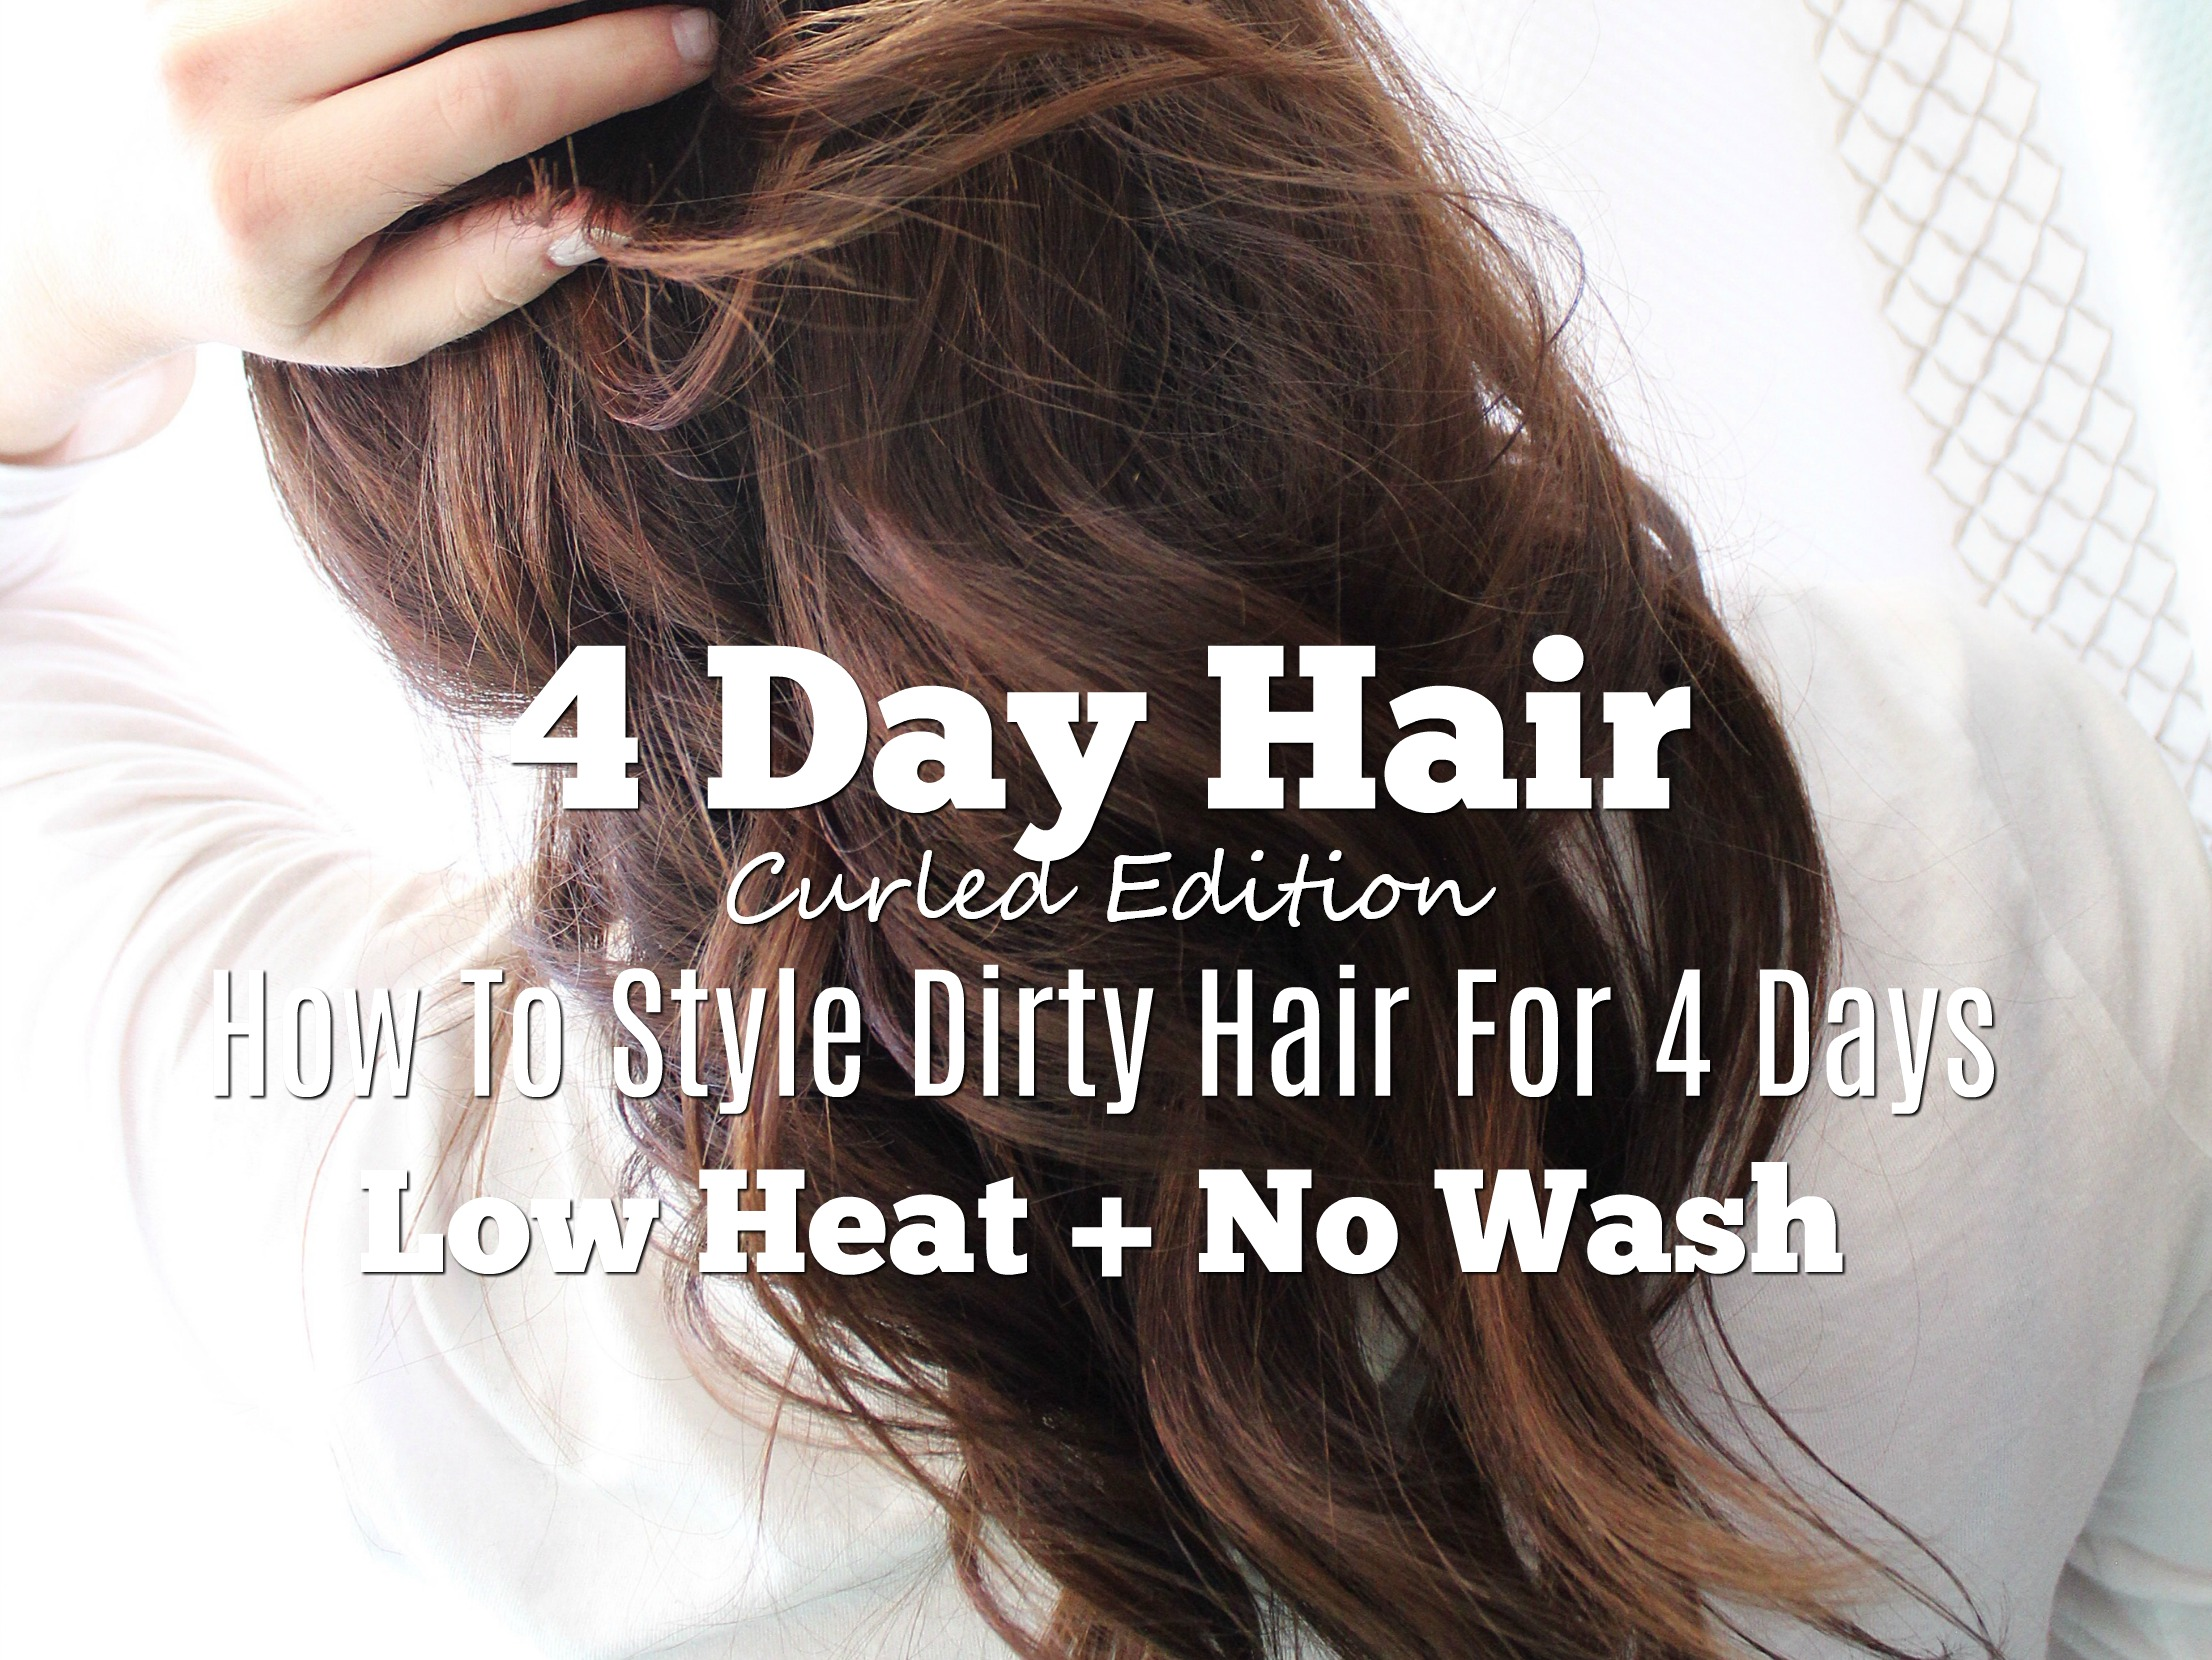 4 day hair curled edition how to style dirty hair .jpg